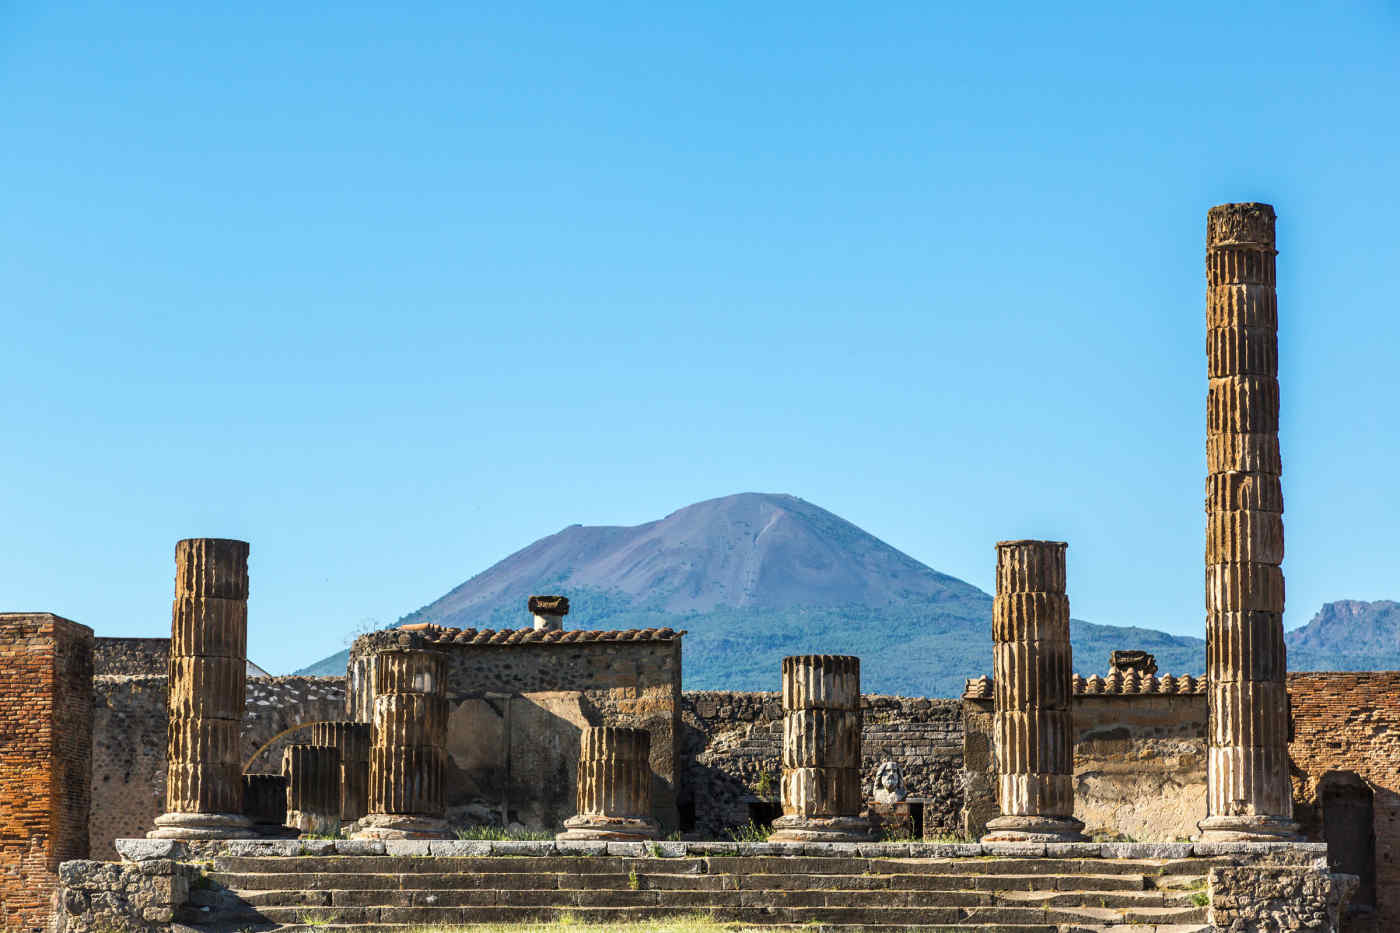 Mt. Vesuvius and Pompeii